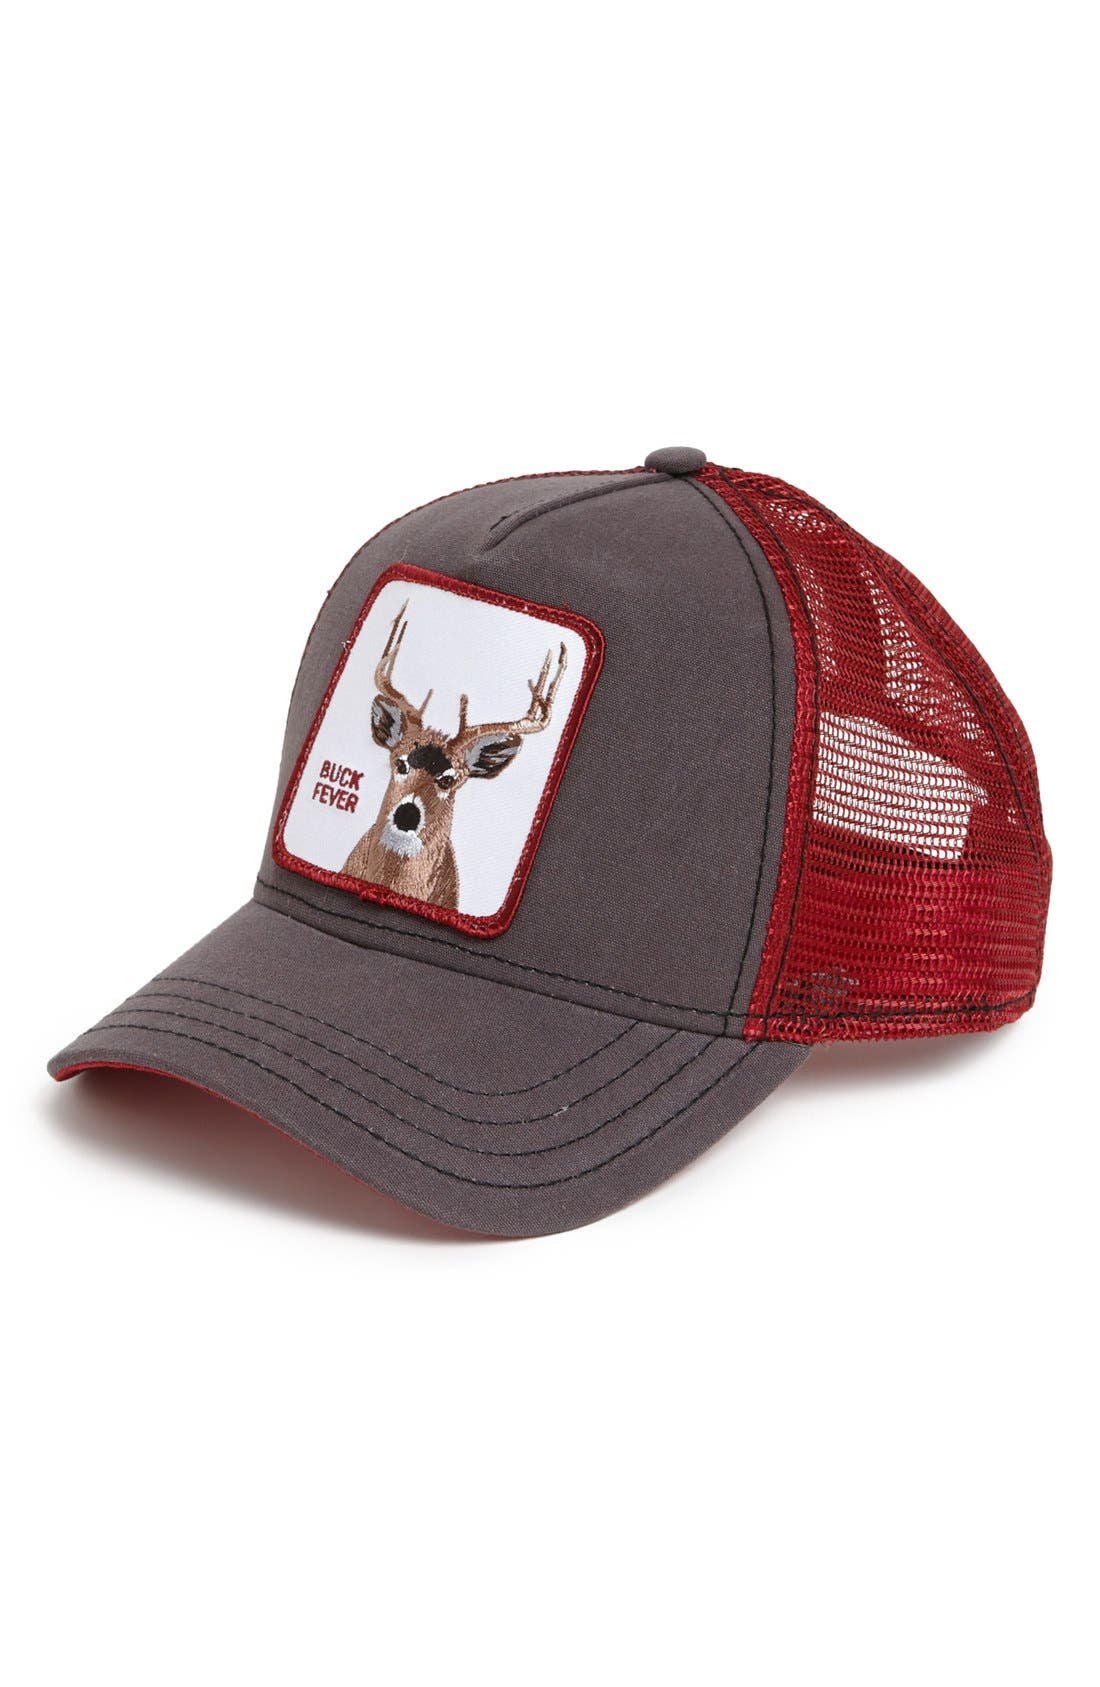 'Animal Farm - Buck Fever' Trucker Cap,                         Main,                         color, Brown/ Red